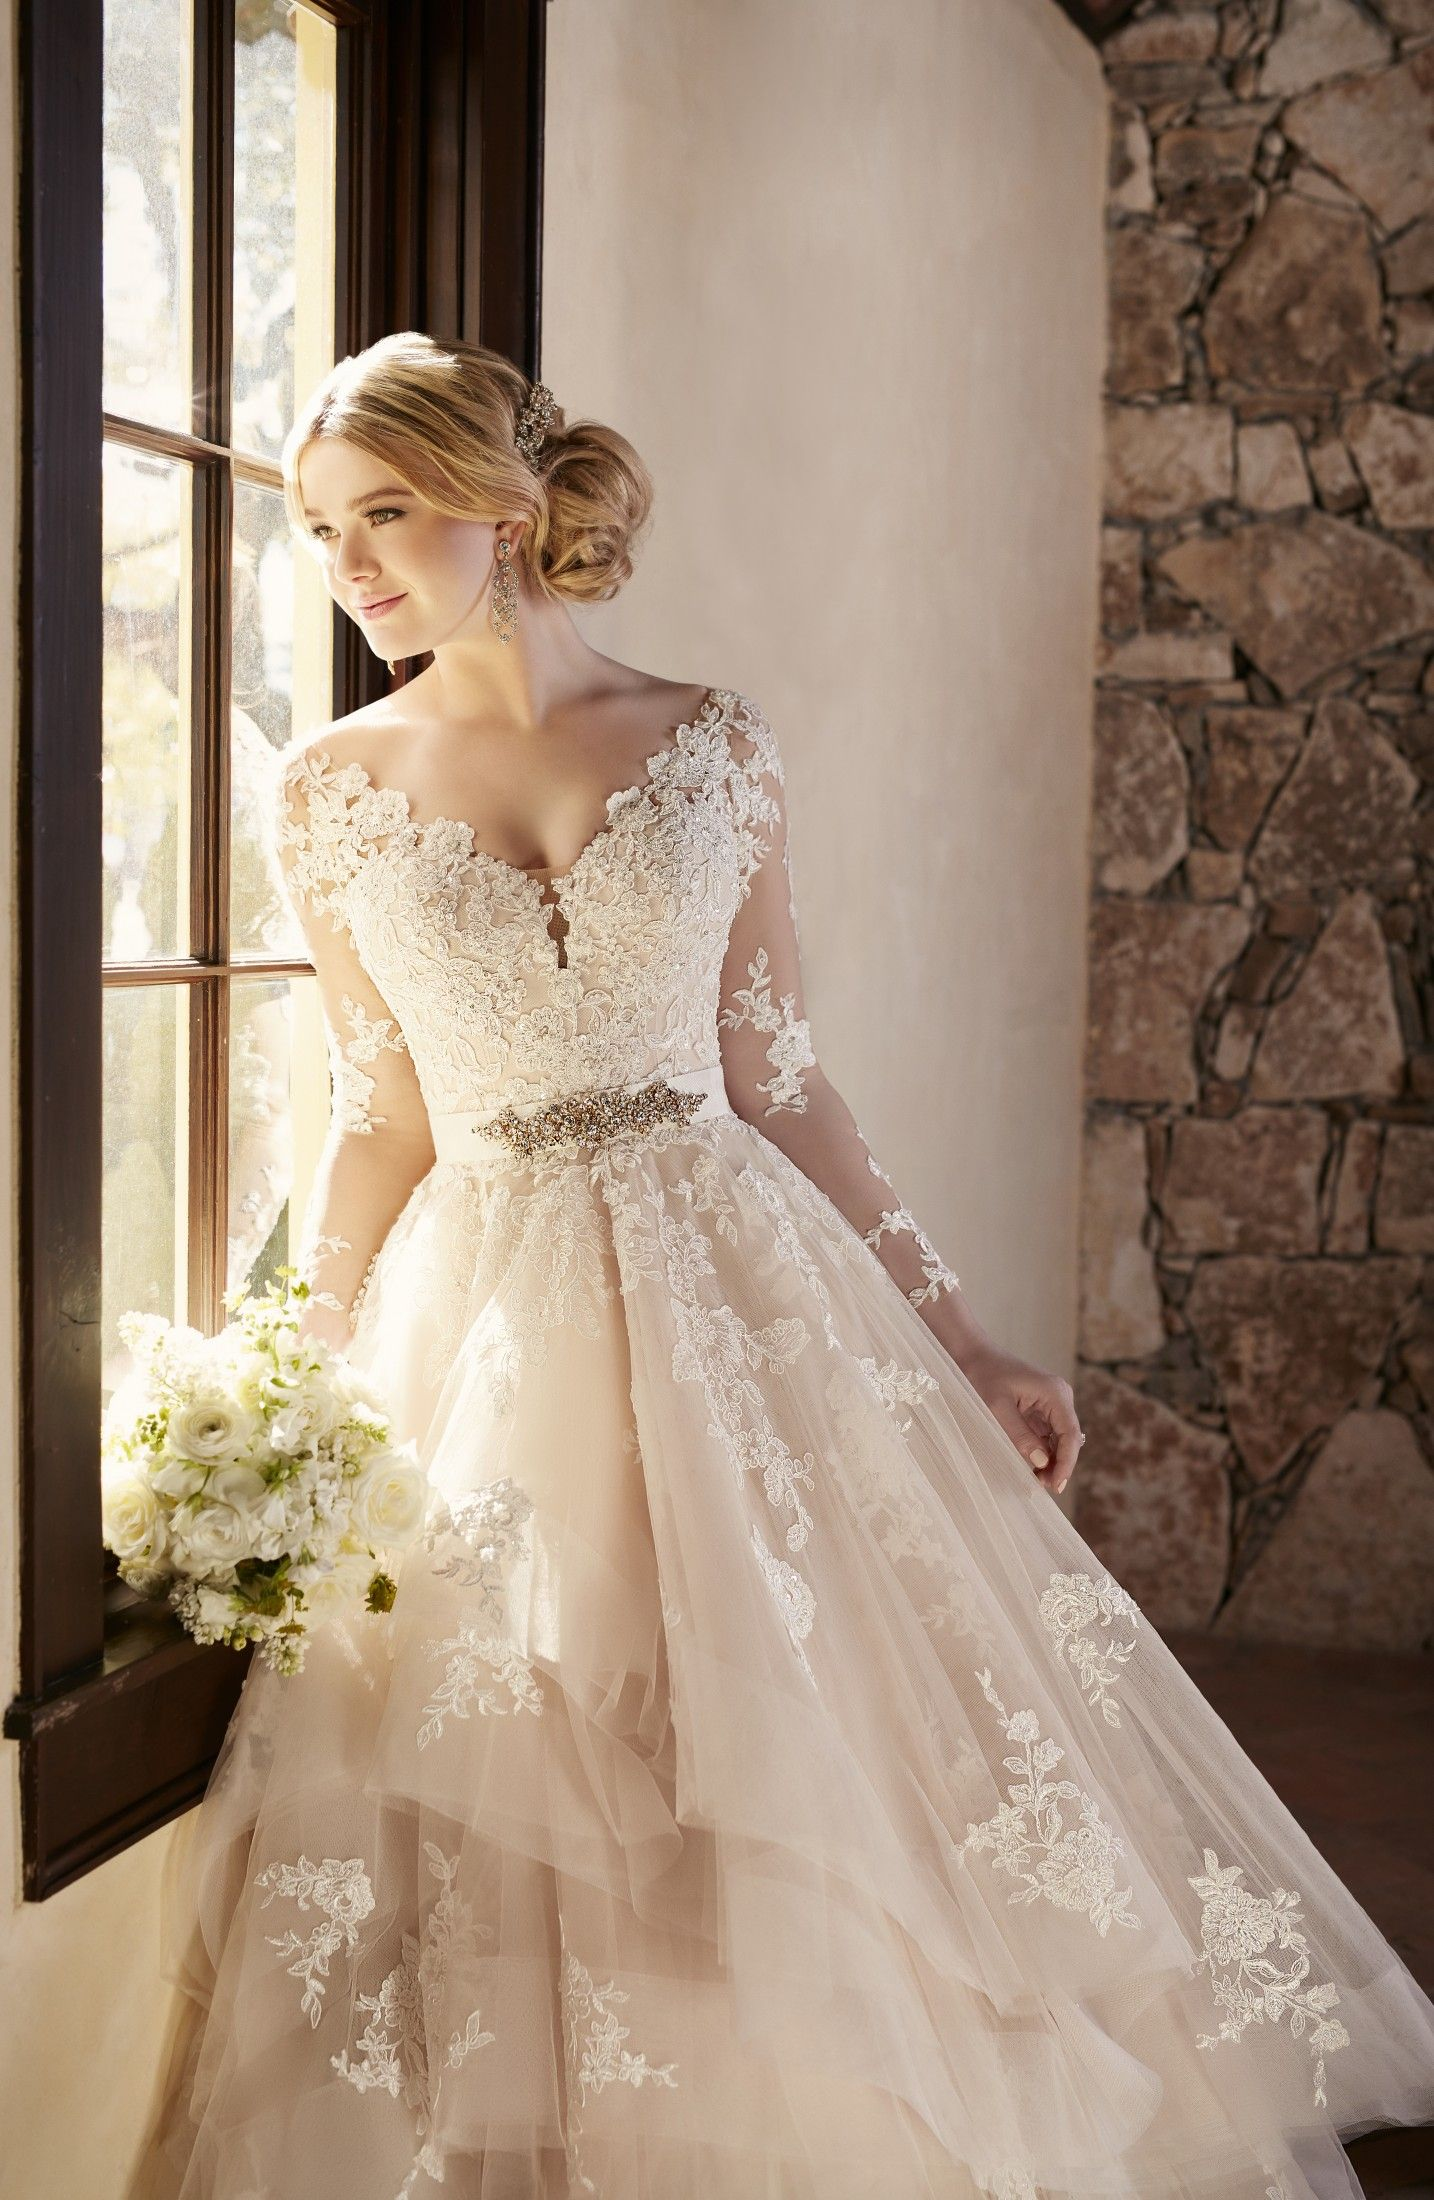 Silver wedding dresses plus size  This elegantly crafted designer tulle wedding dress from Essense of